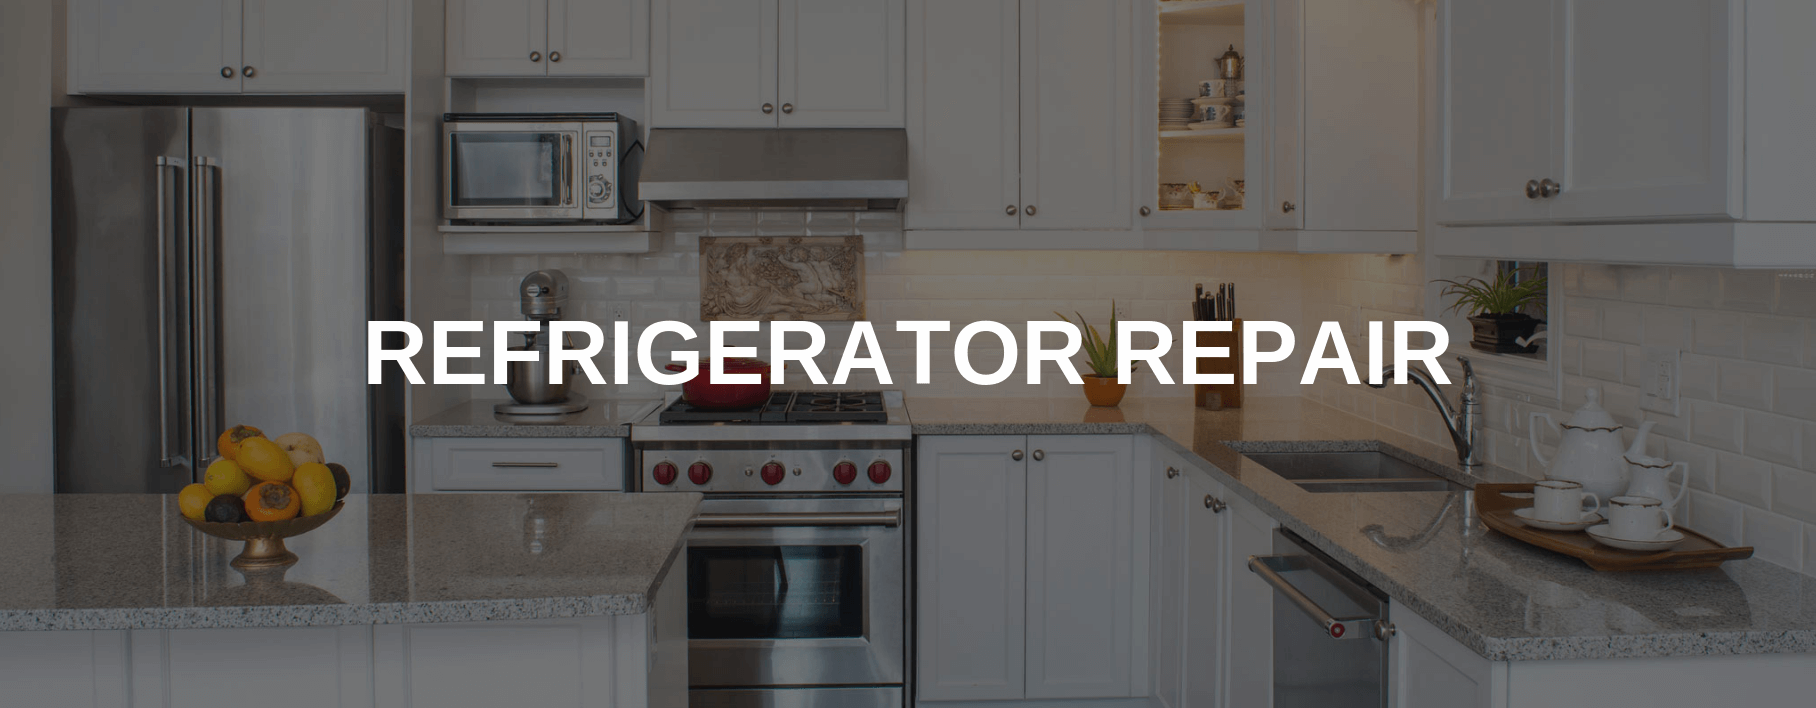 refrigerator repair west haven